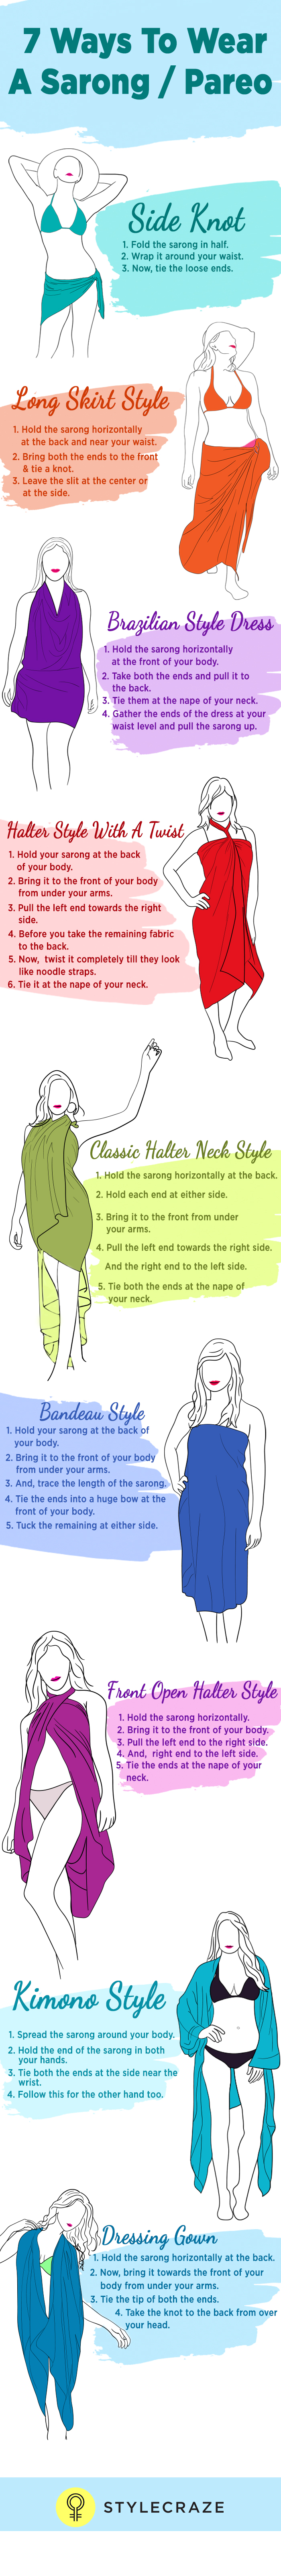 How To Wear A Sarong - 9 Ways Of Wearing A Sarong